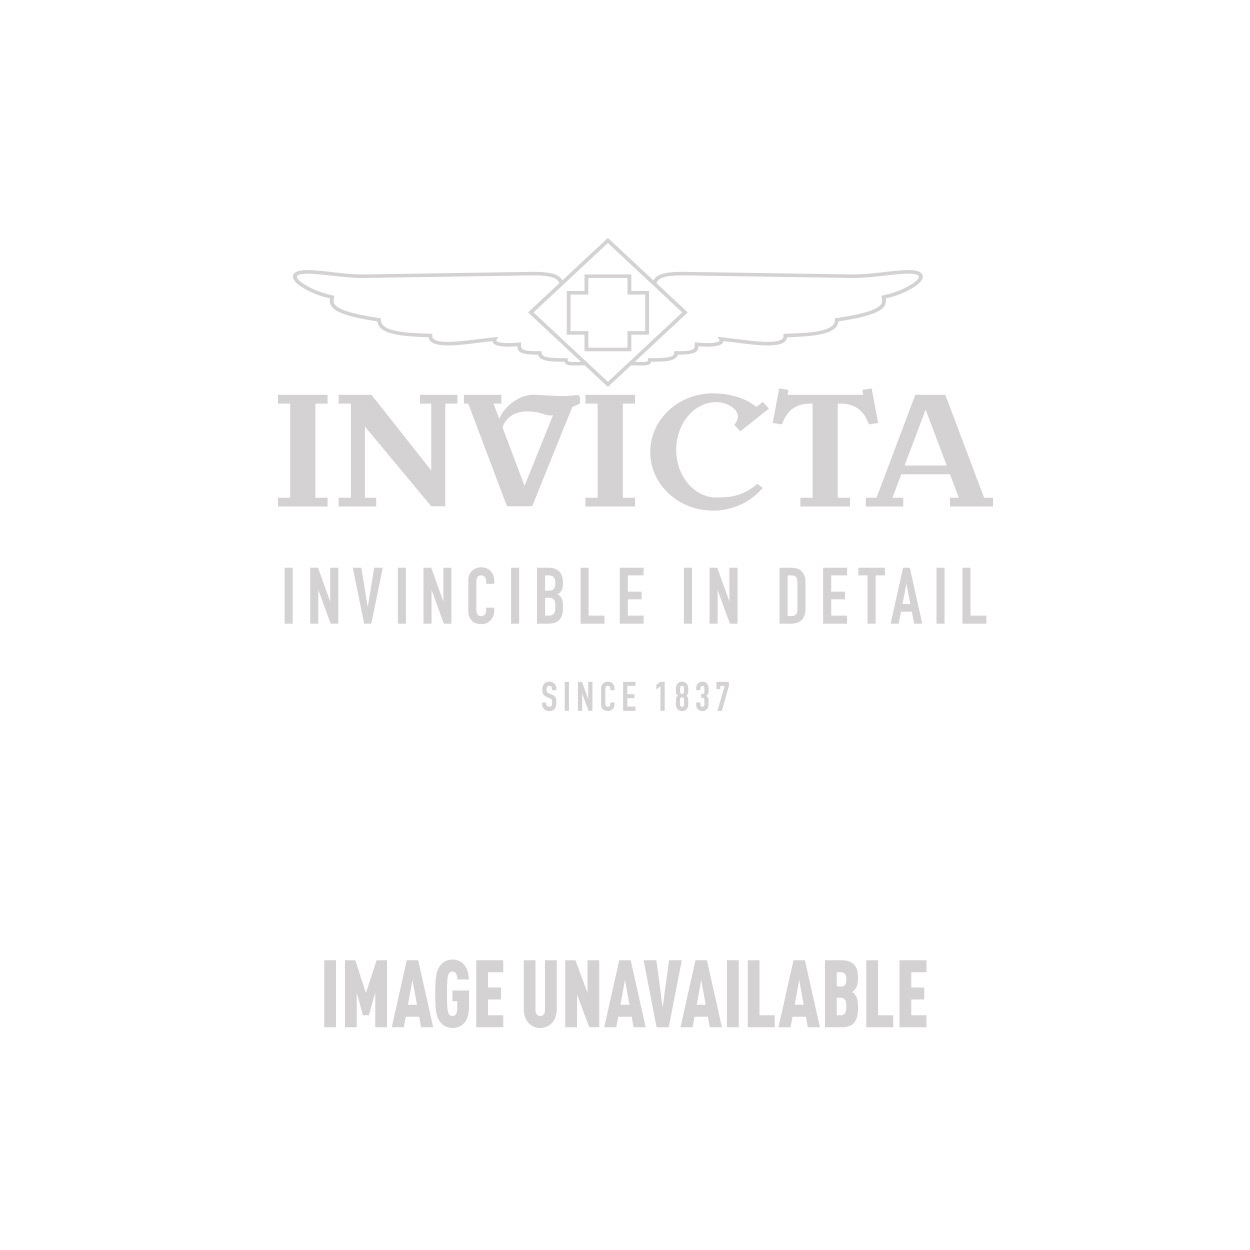 Invicta Specialty Swiss Movement Quartz Watch - Gunmetal case with Gunmetal tone Stainless Steel band - Model 14592